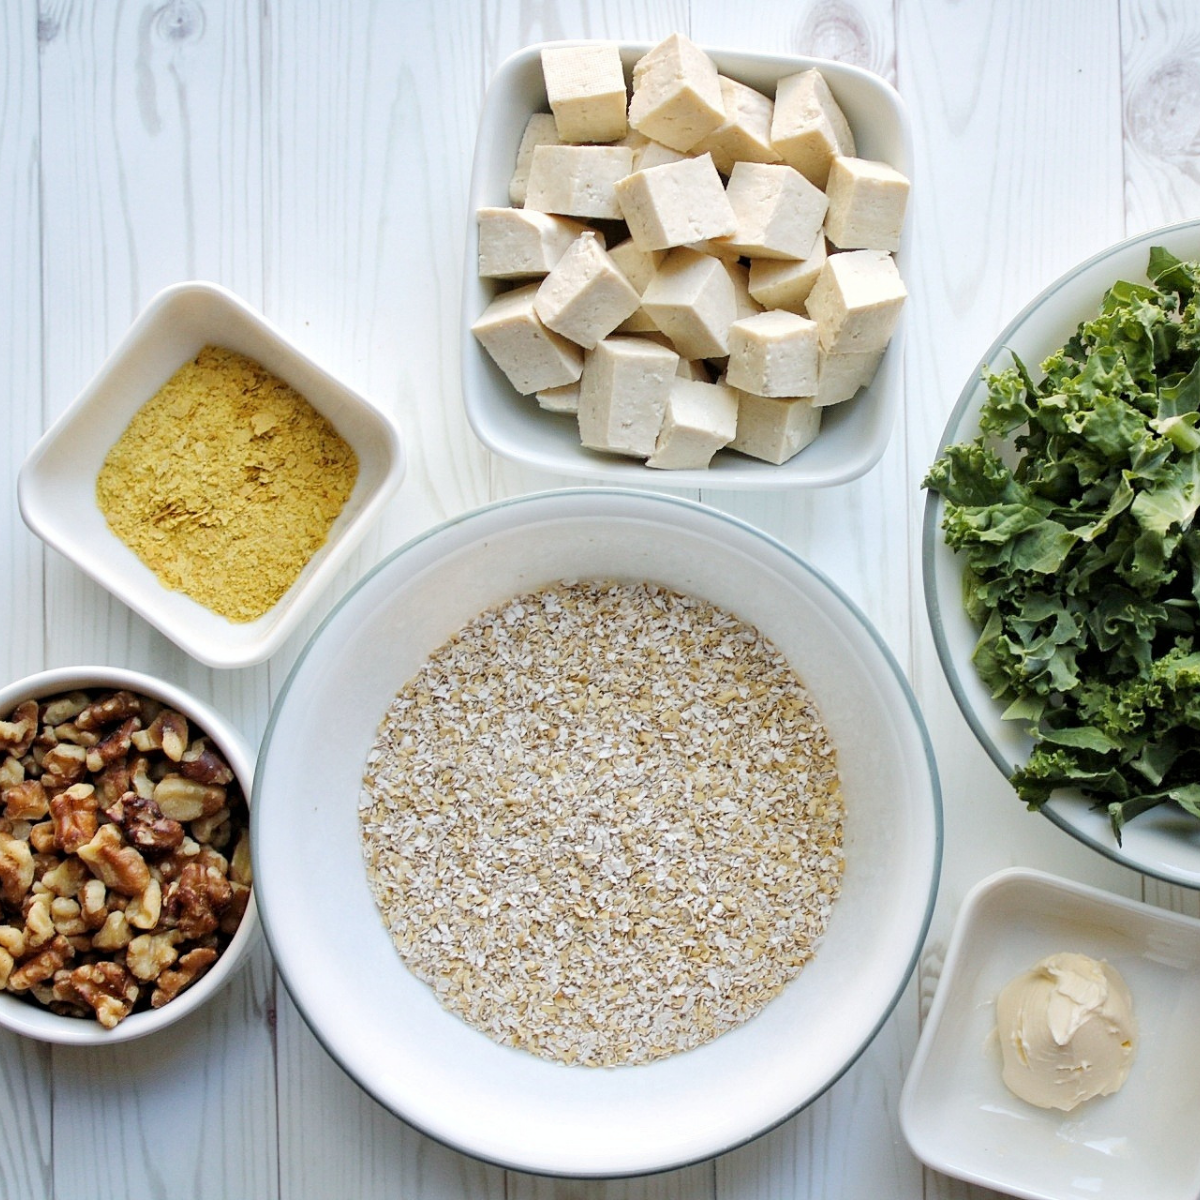 Ingredients for oat bran including cubed tofu, kale, walnuts, oat bran, vegan butter, and nutritional yeast